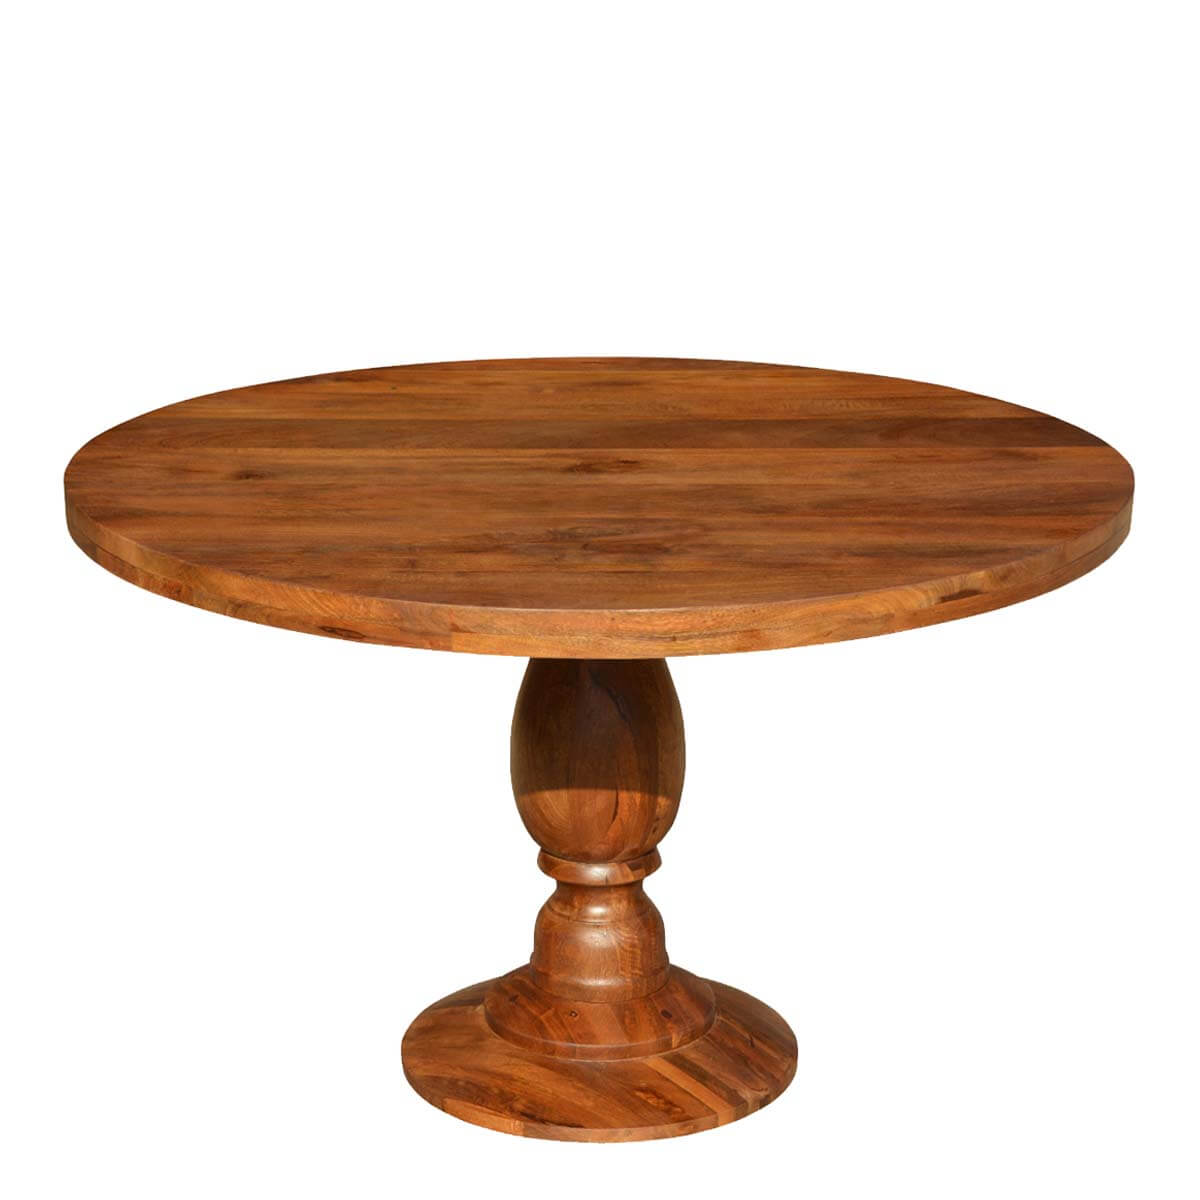 Rustic Colonial American Solid Wood Round Pedestal Dining Table - 48 round solid wood dining table